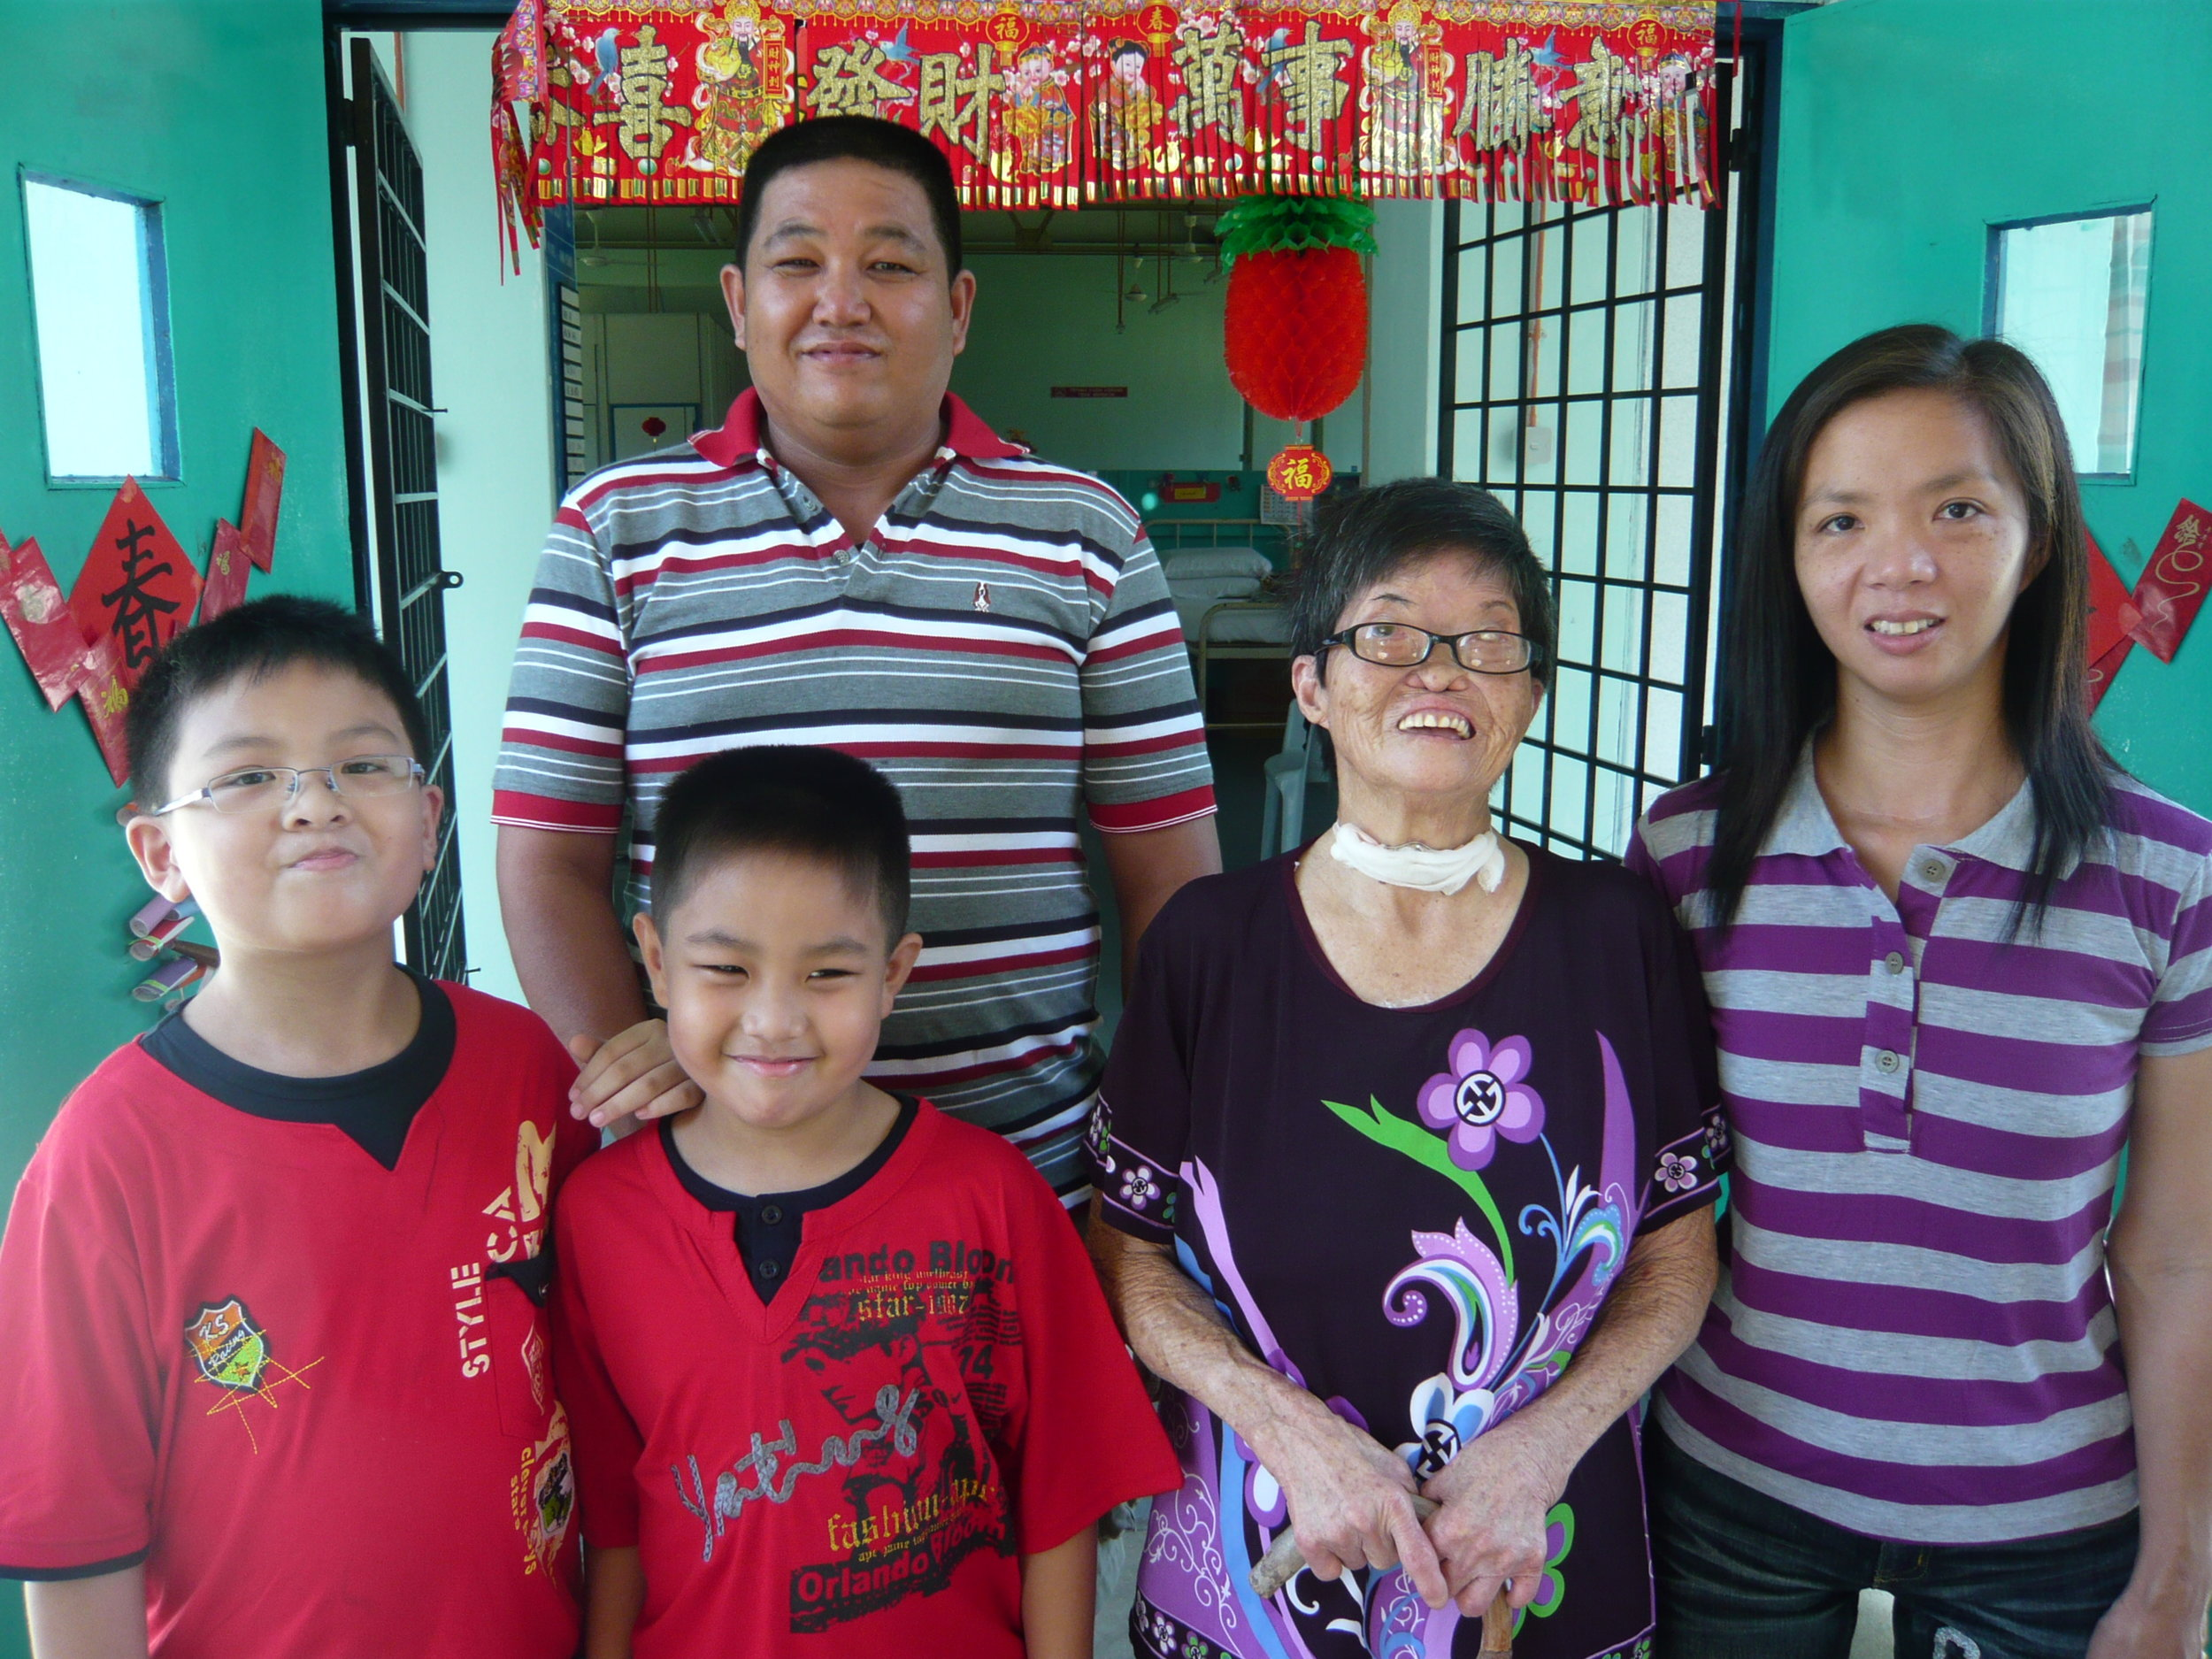 Pak Nang's daughter, son-in-law,and two grandsons visited her during Chinese New Year. (photo by Joshua Wong)